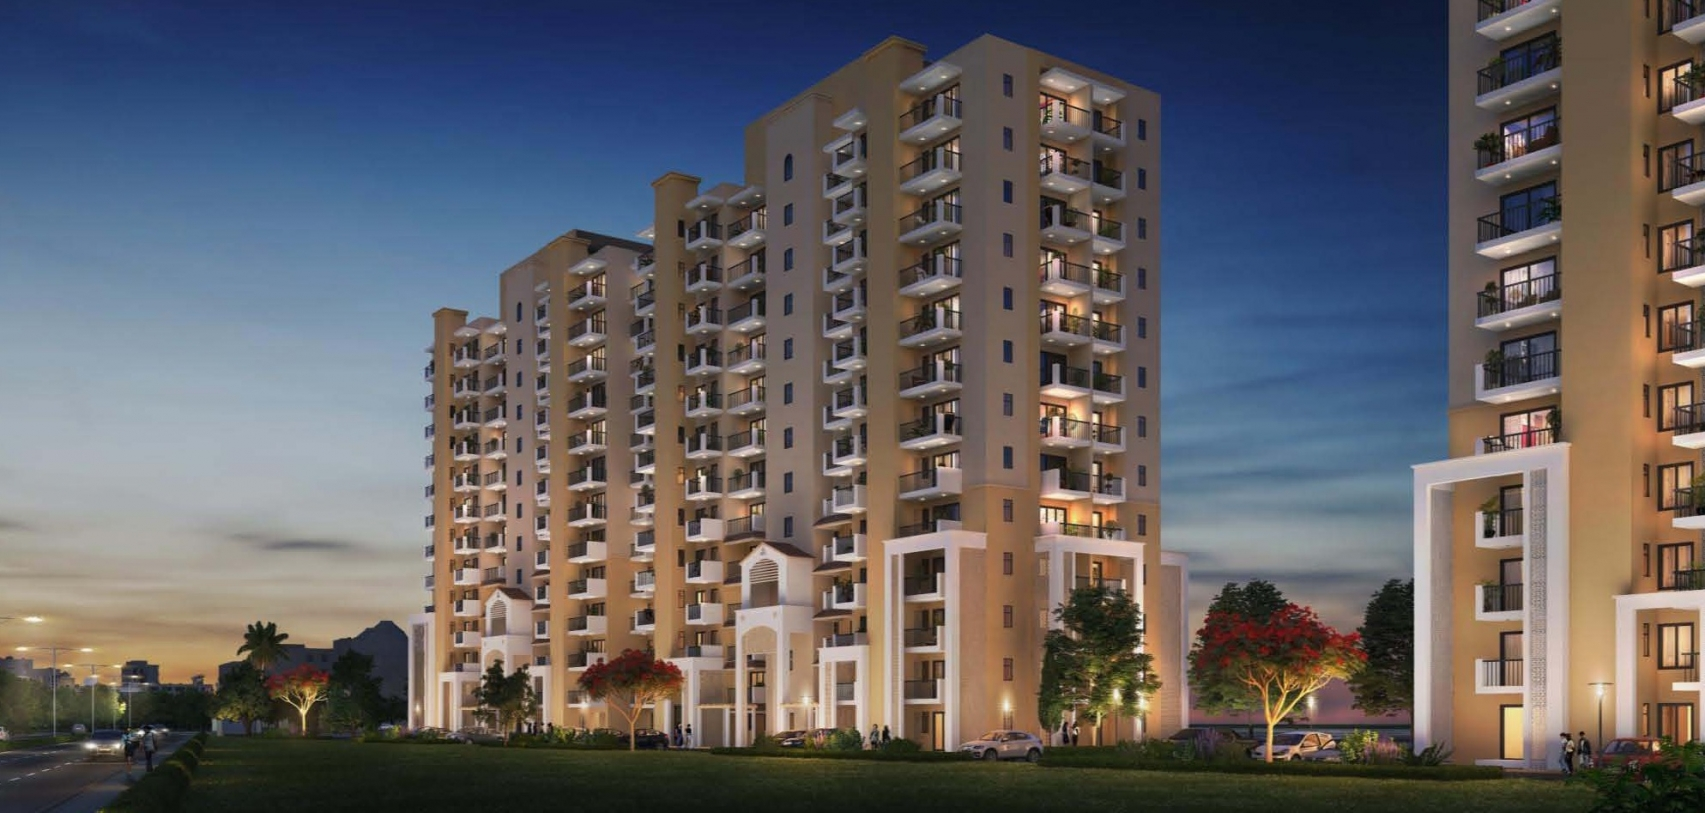 Pre-Leased Commercial Property – The Best Investment Option To Enjoy Assured Income